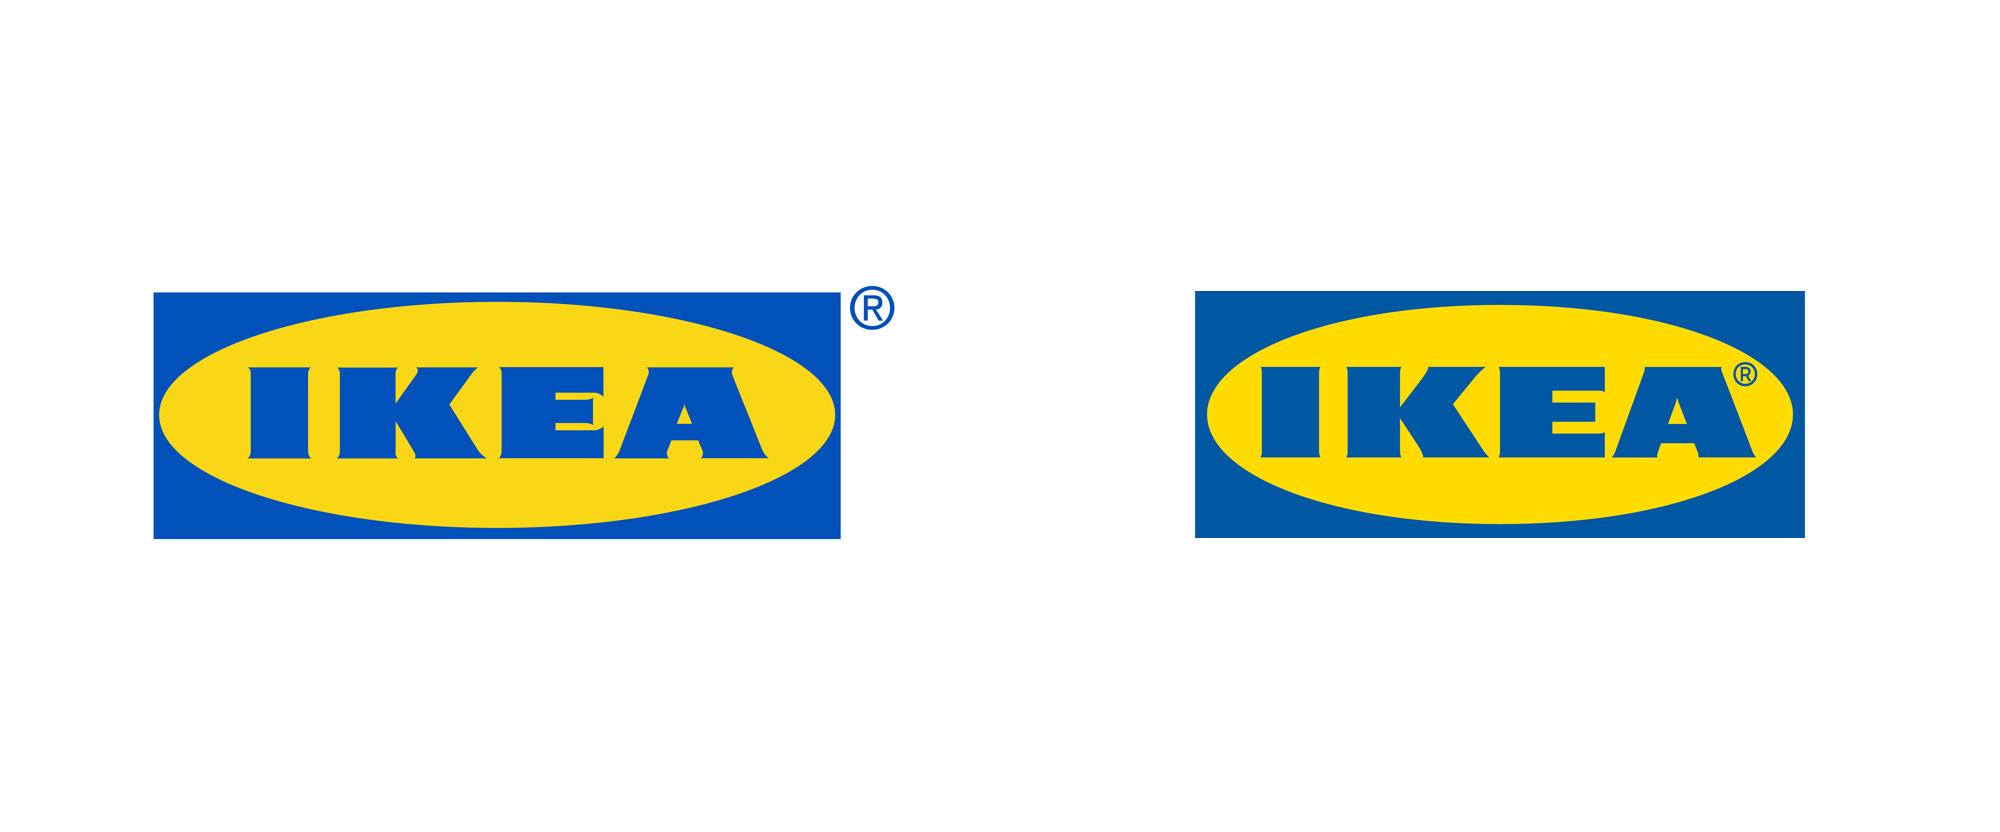 Ikea Bank Bad Brand New New Logo For Ikea By Seventy Agency And 72andsunny